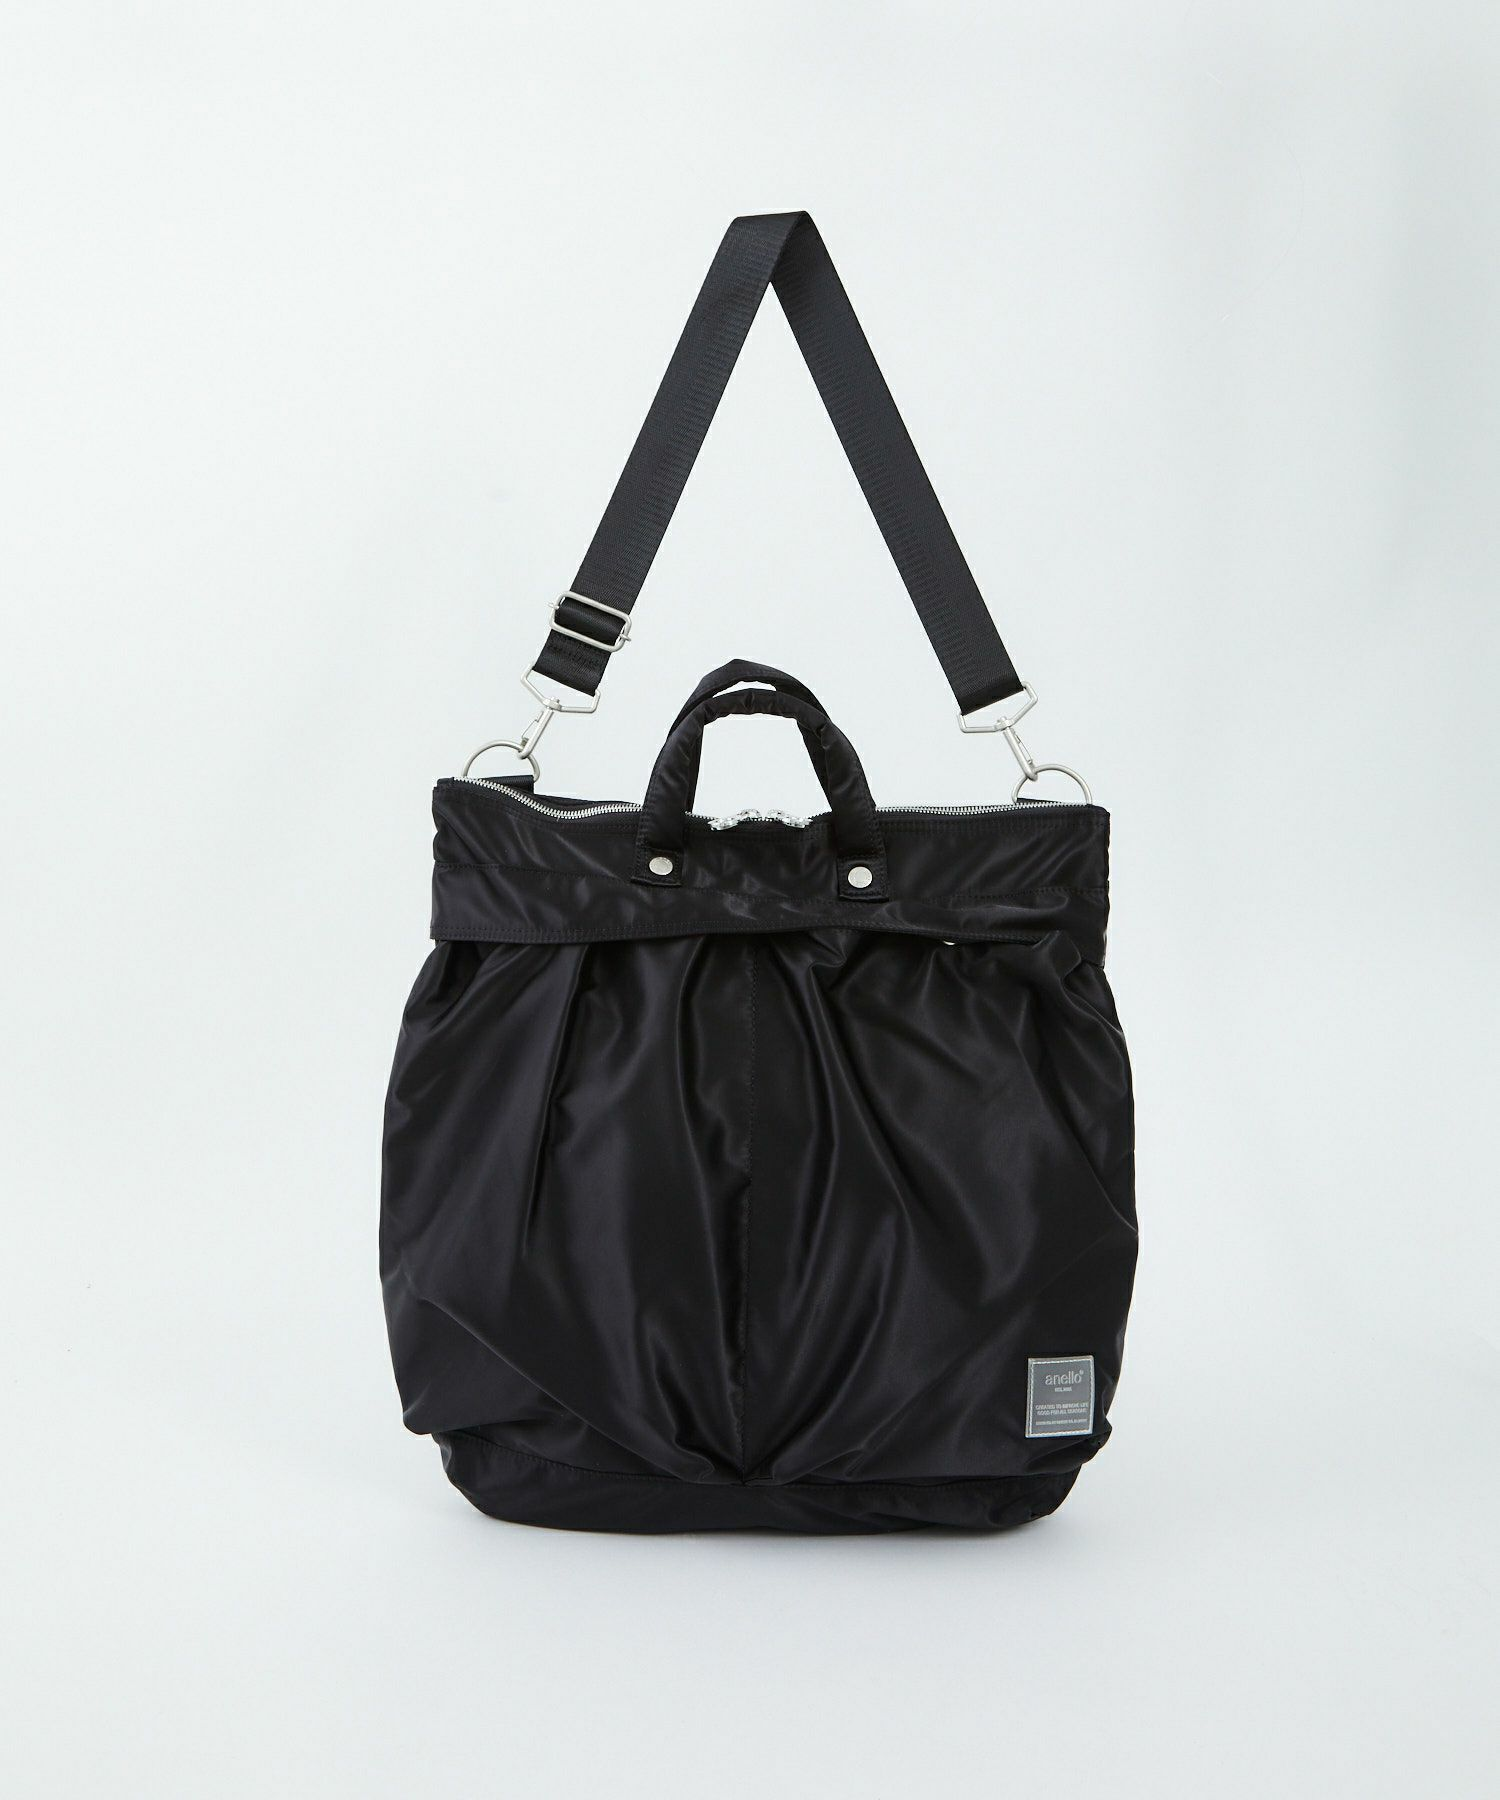 Anello SABRINA Nylon 2 Way Regular Shoulder Bag ATT0504 Black Japan Original Official Authentic Real Genuine Bag Free Shipping Worldwide Special Discount Low Prices Great Offer